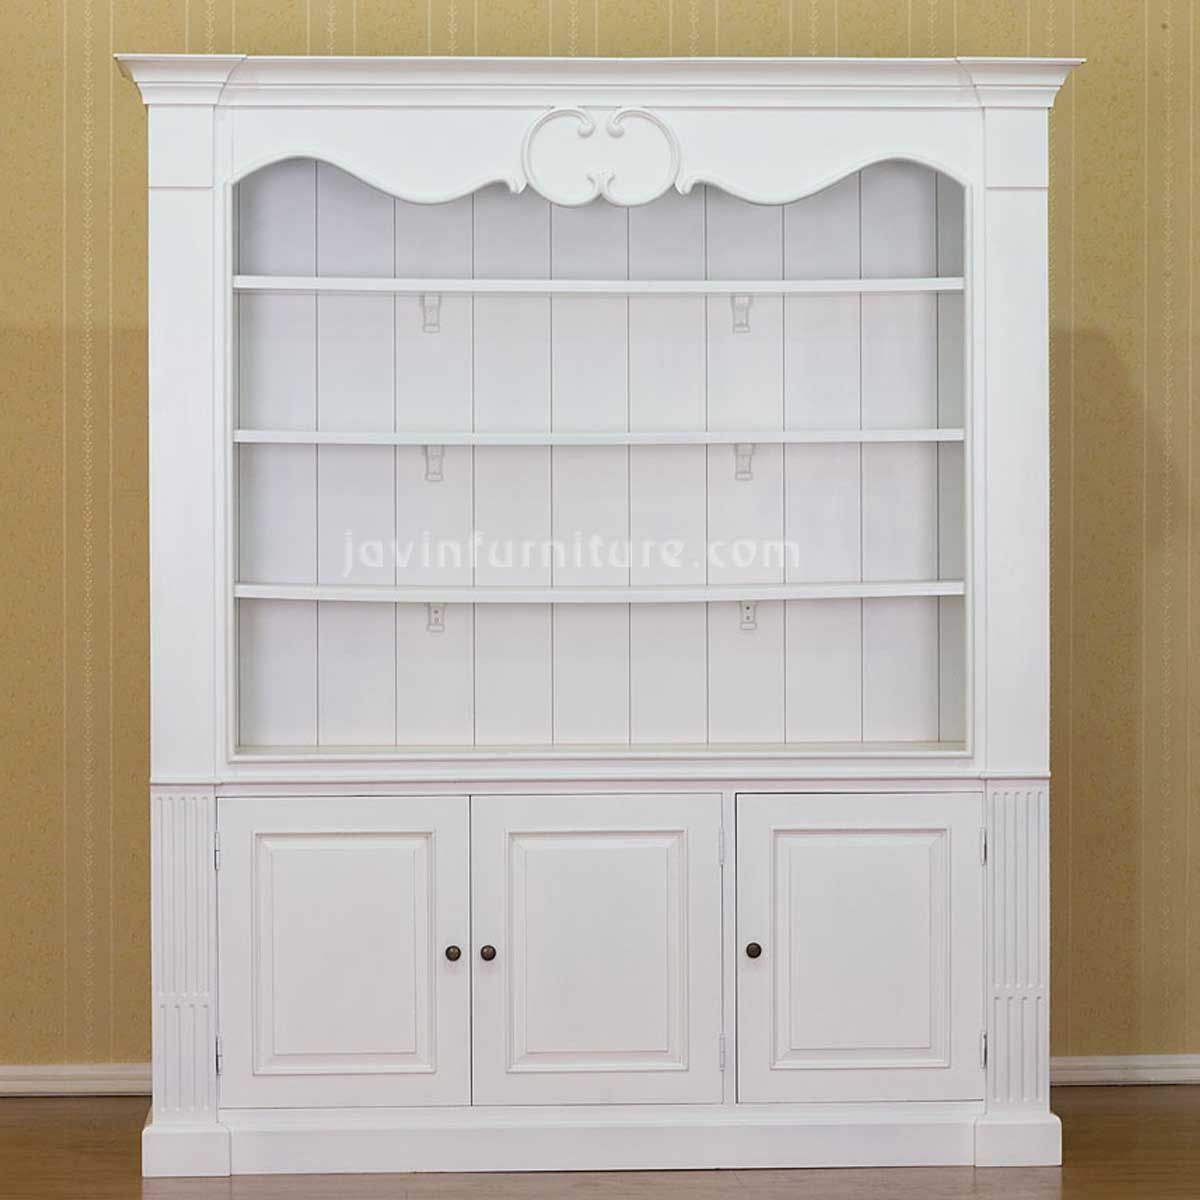 15 Photo of Bookcase With Bottom Cabinets